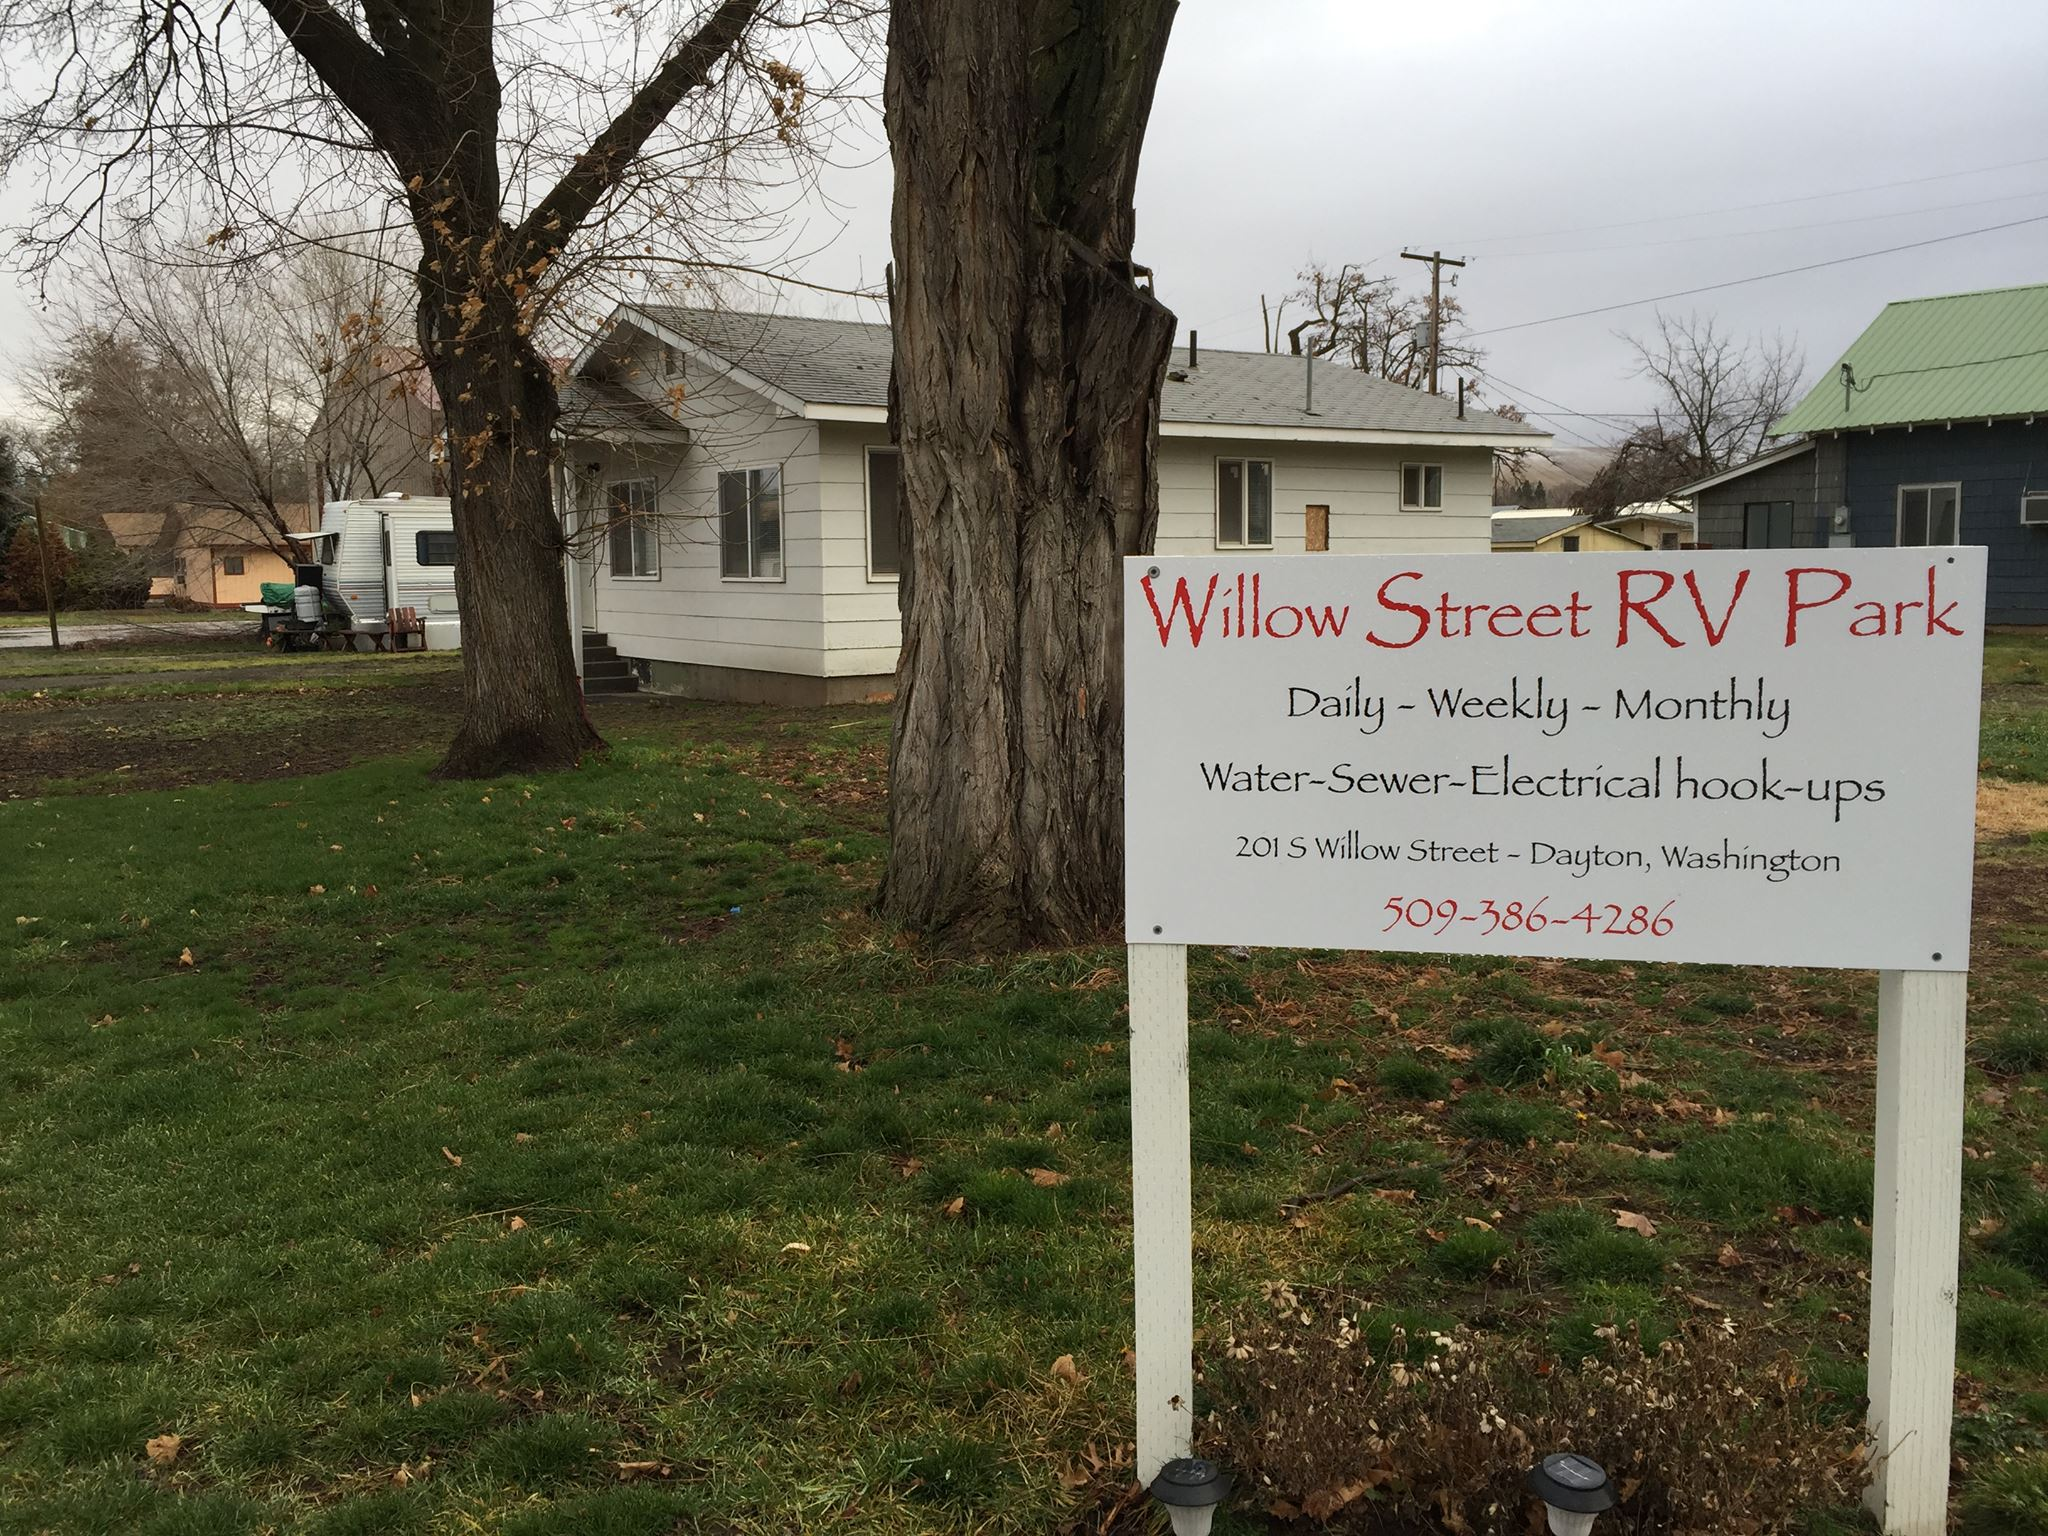 Willow Street RV Park - Willow Street RV Park was established on May 1st, 2017.The RV Park currently has nine Recreational Vehicle hookups, an office building, a restroom/shower room, and a coin operated laundry machine for RV Park patrons. The RV Park has an open layout and contains multiple trees that provide shade.Main Street businesses are within walking distance of the RV Park. Touchet River and the Downtown Shopping and Dining are just two blocks away.Address: 201 S Willow St Dayton, WA 99328 509-386-4286